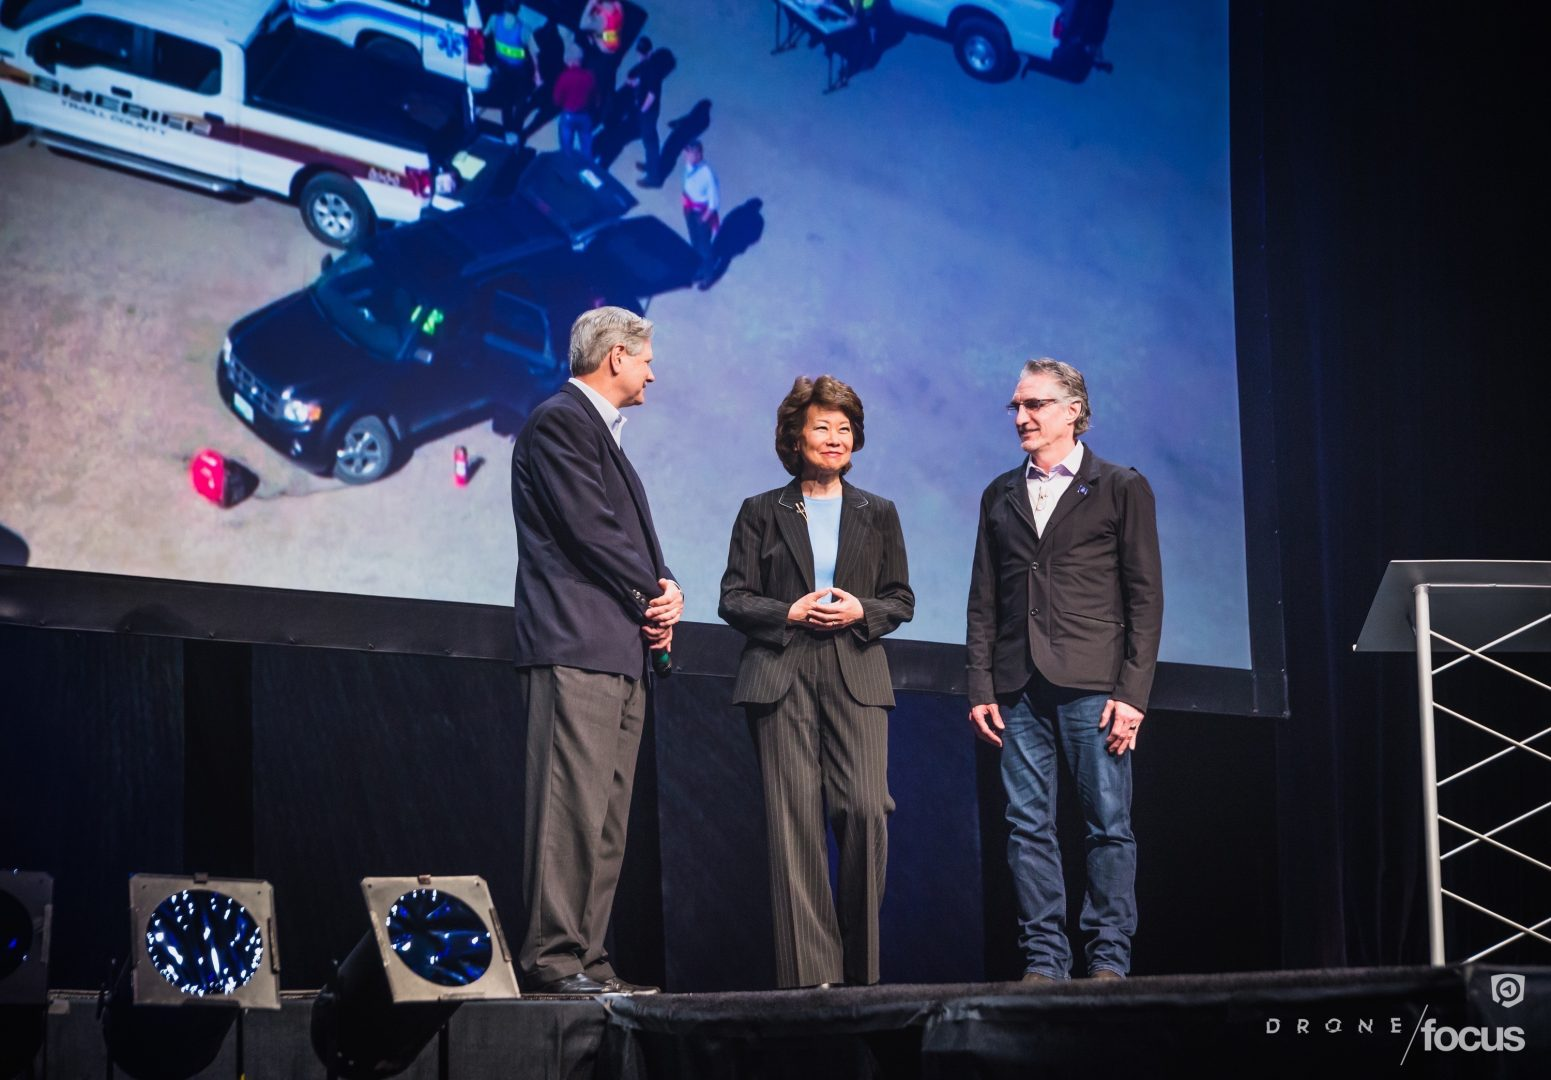 Hoeven, Chao, and Burgum image by J. Alan Paul Photography & Emerging Prairie